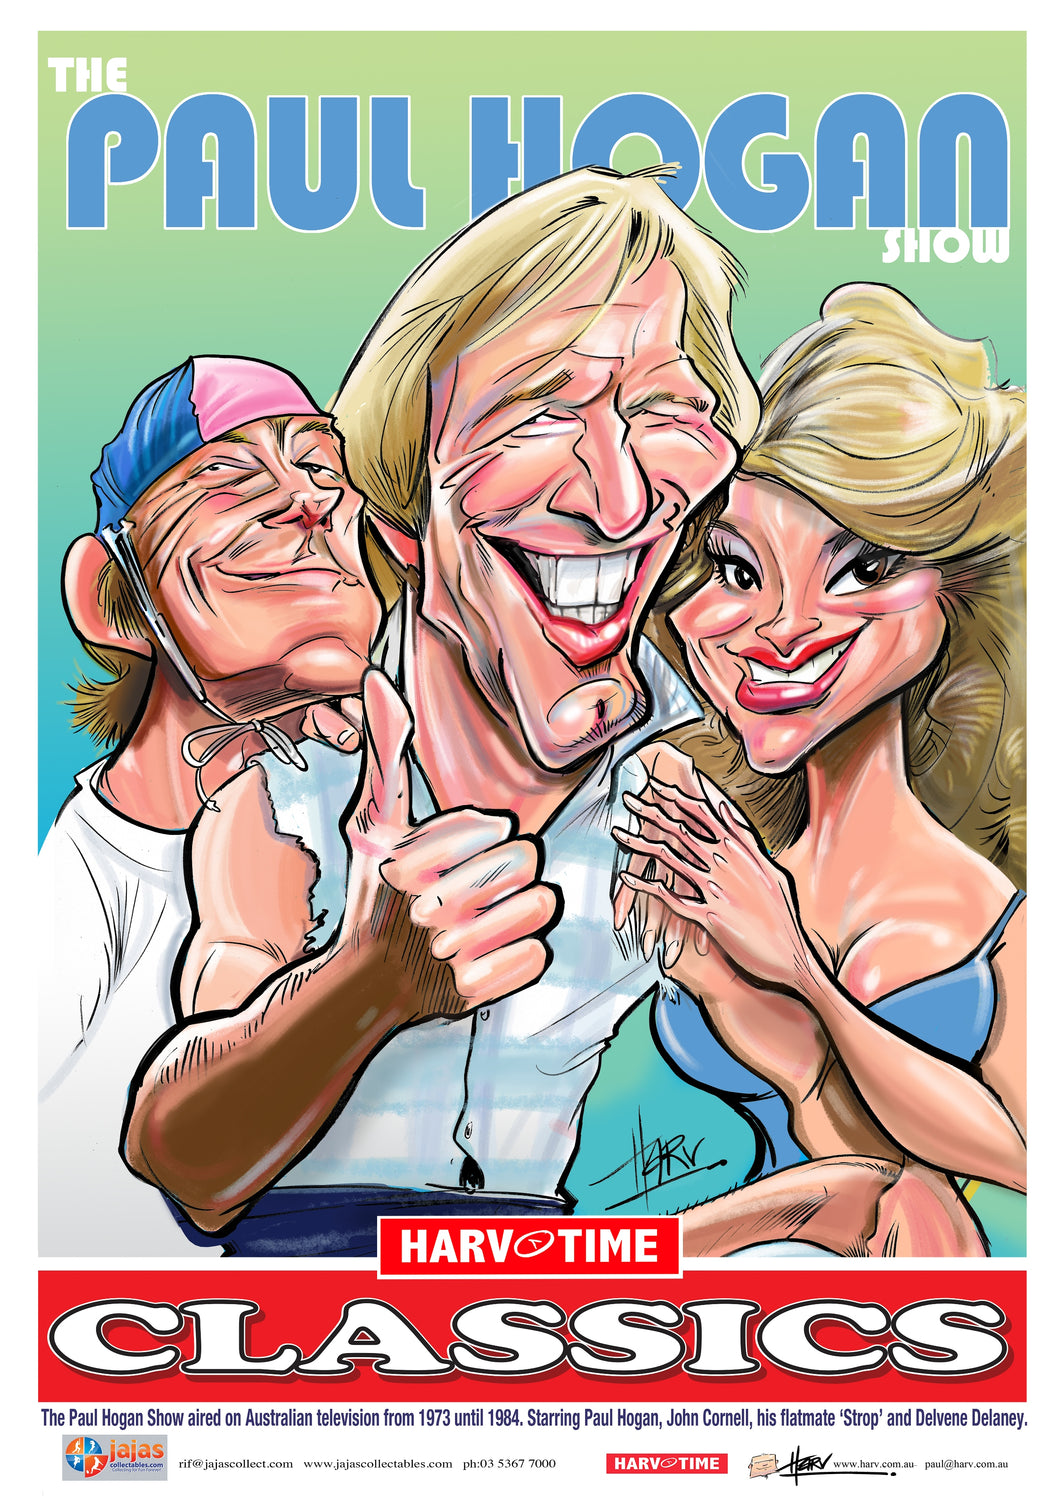 The Paul Hogan Show, Harv Time Poster